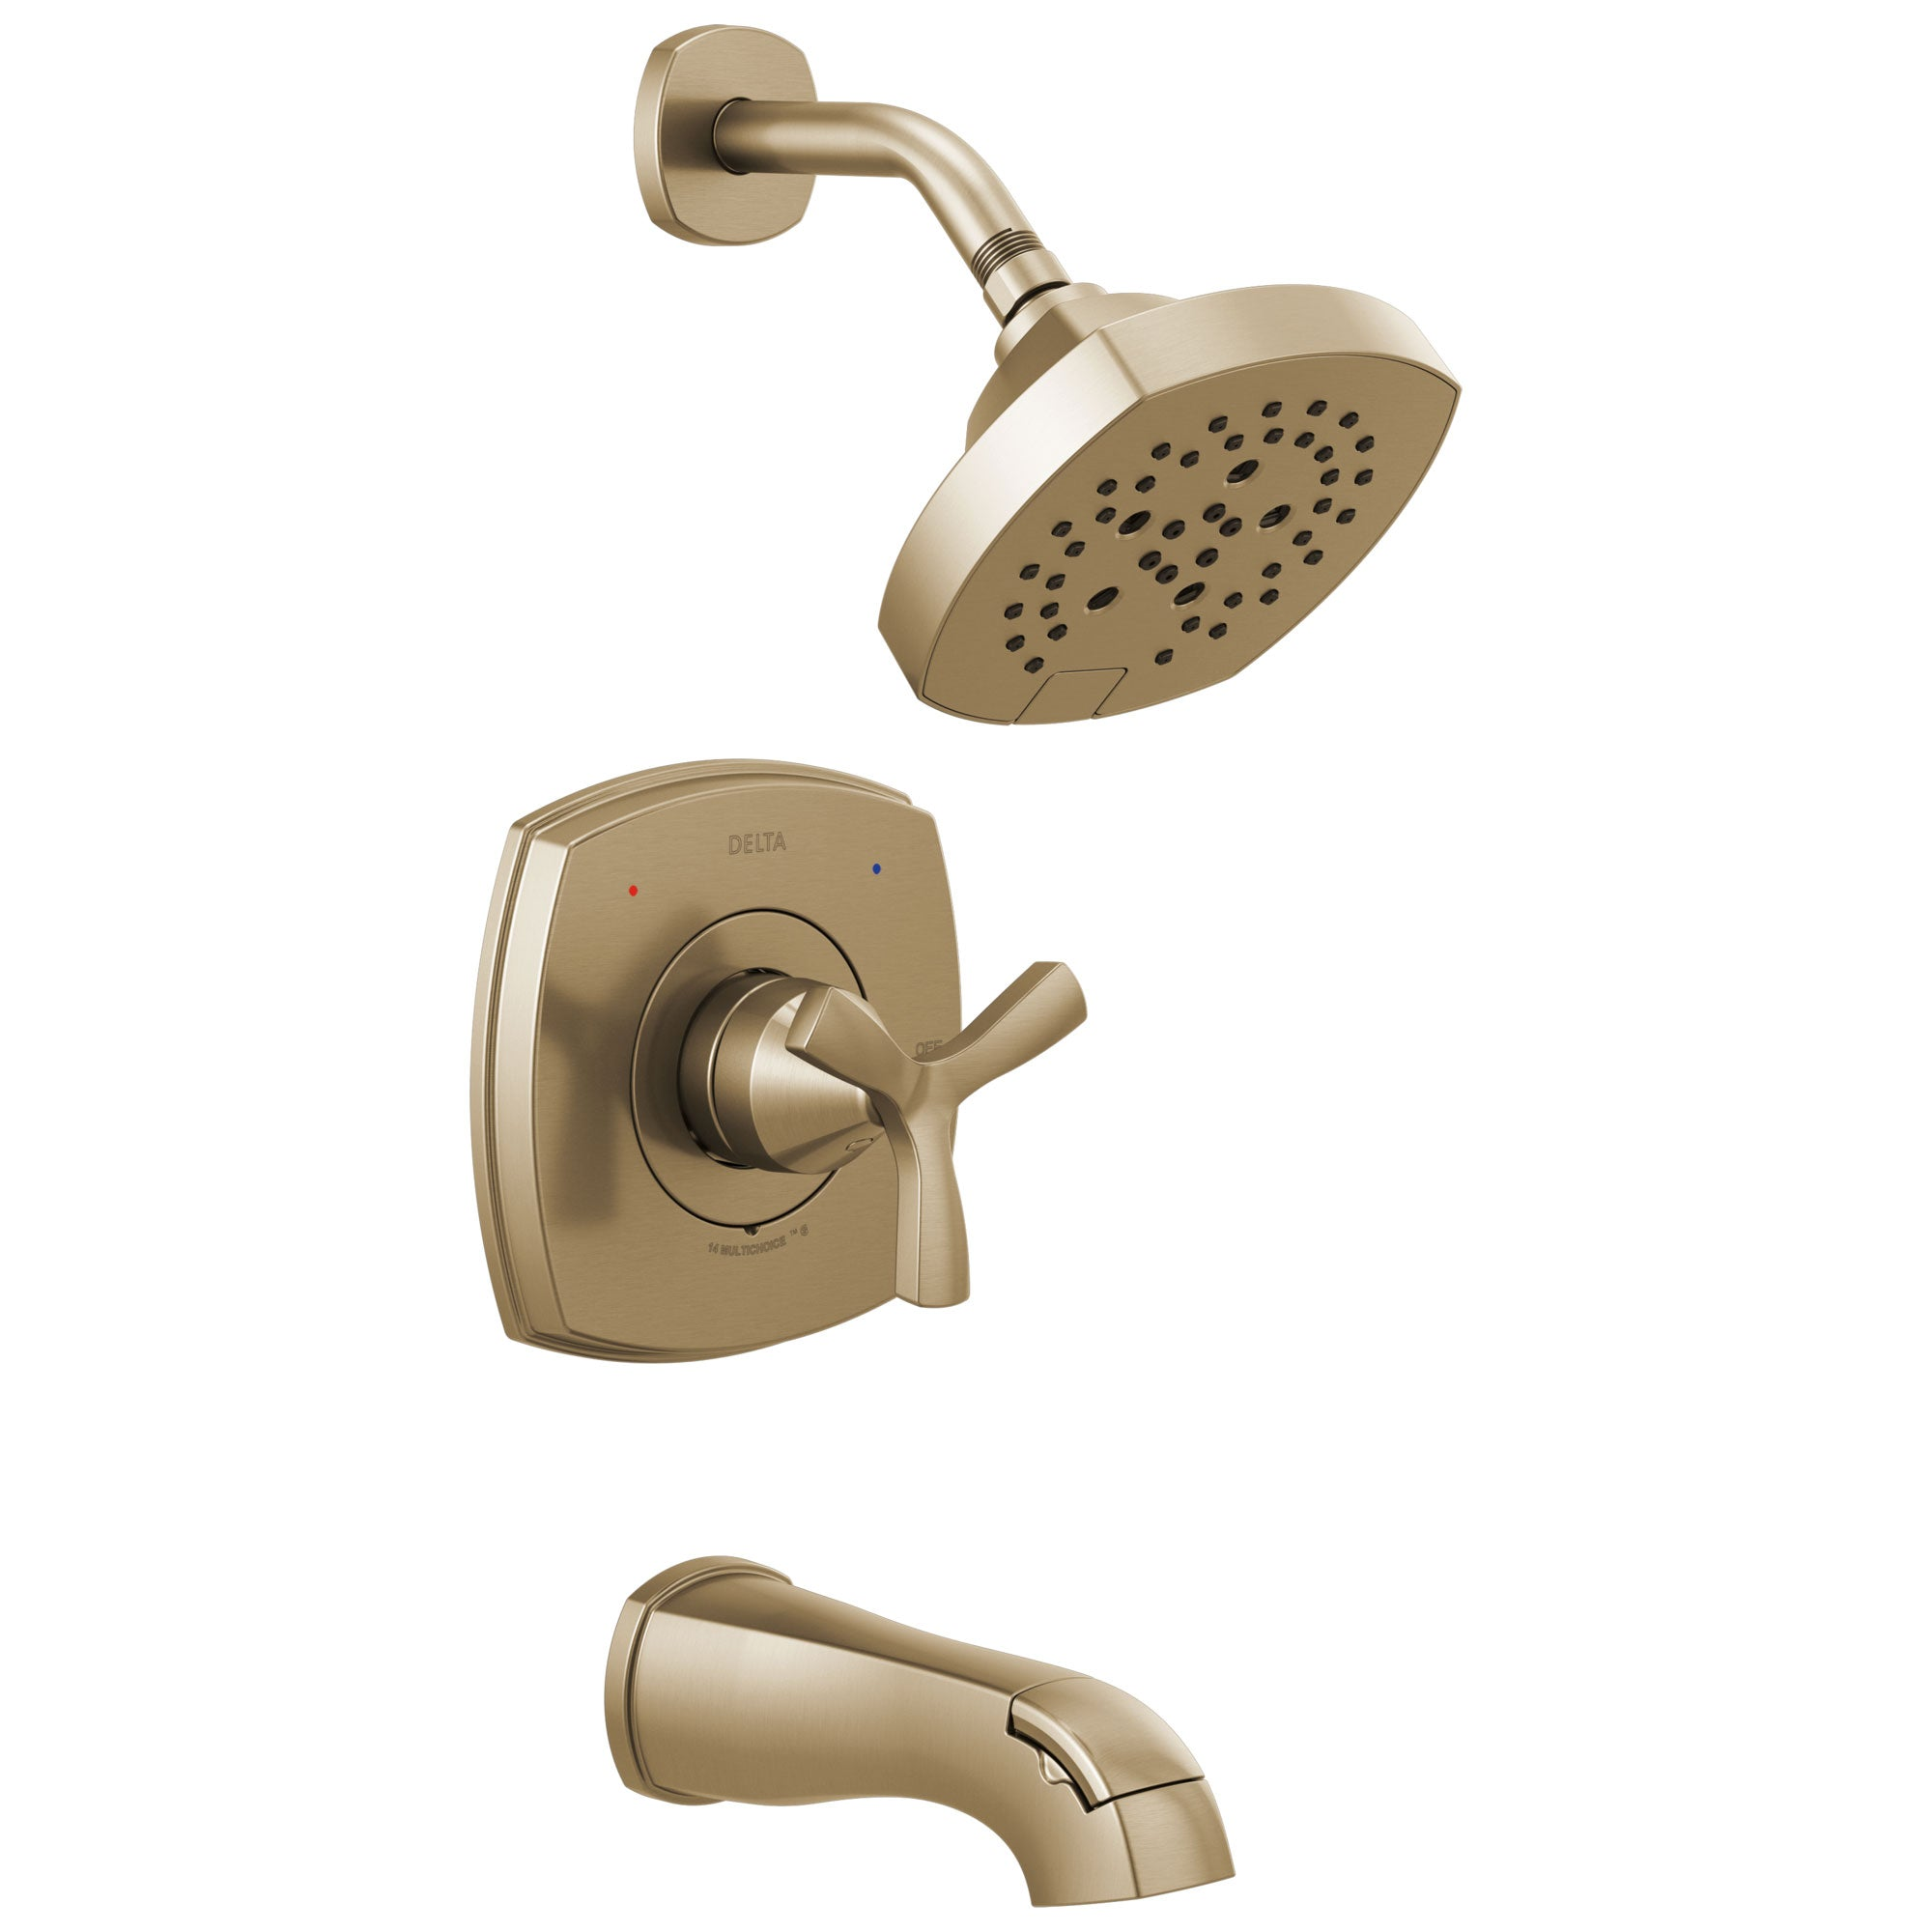 Delta Stryke Champagne Bronze Finish 14 Series Tub and Shower Combination Faucet Includes Helo Cross Handle, Cartridge, and Valve without Stops D3437V